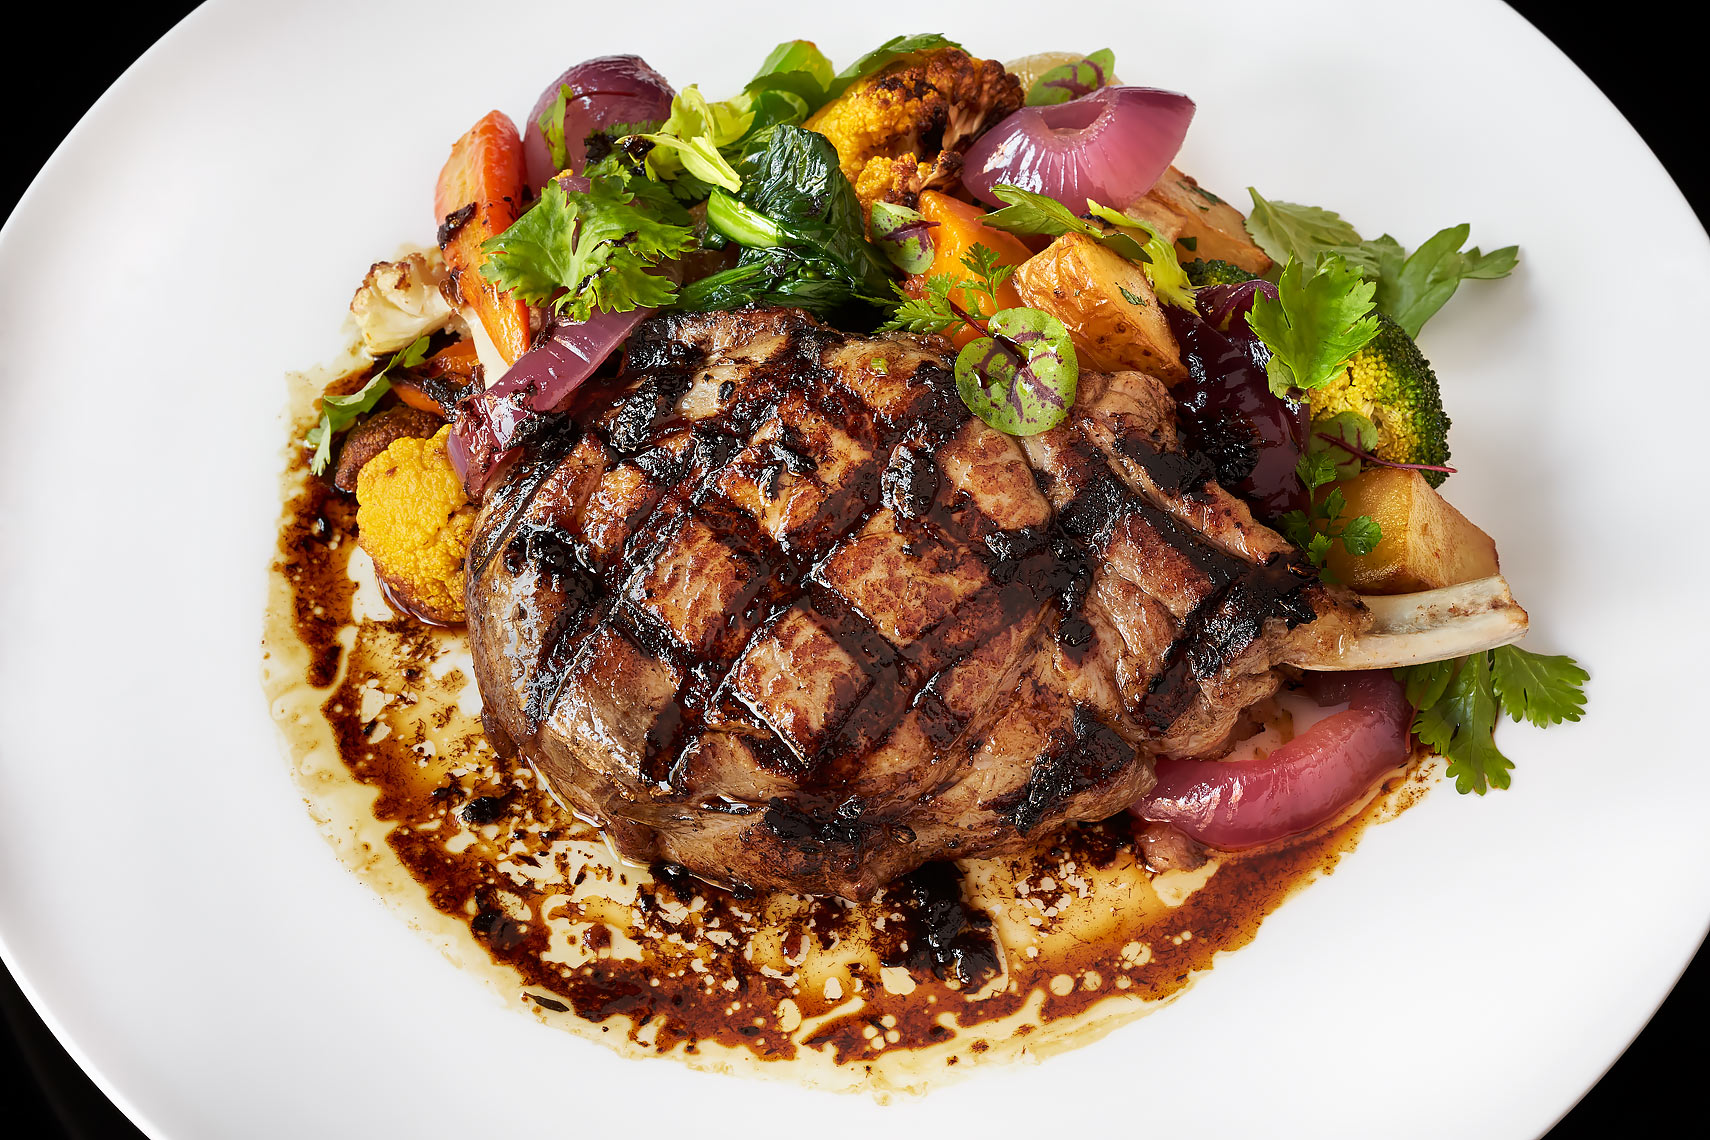 FOOD-DiningOut38-Capella-Grill-Room-Pork-Chop